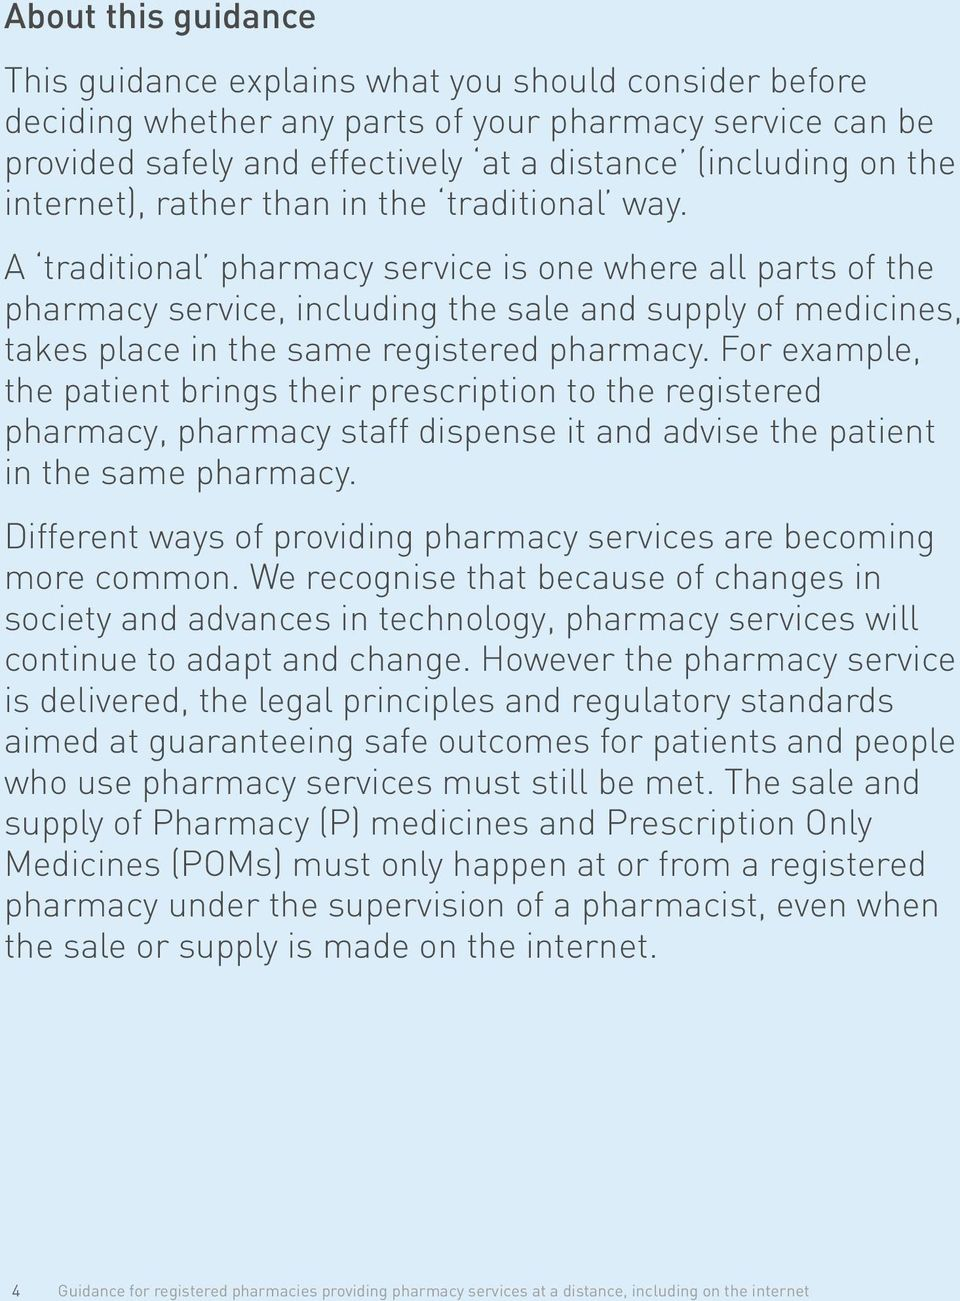 A traditional pharmacy service is one where all parts of the pharmacy service, including the sale and supply of medicines, takes place in the same registered pharmacy.